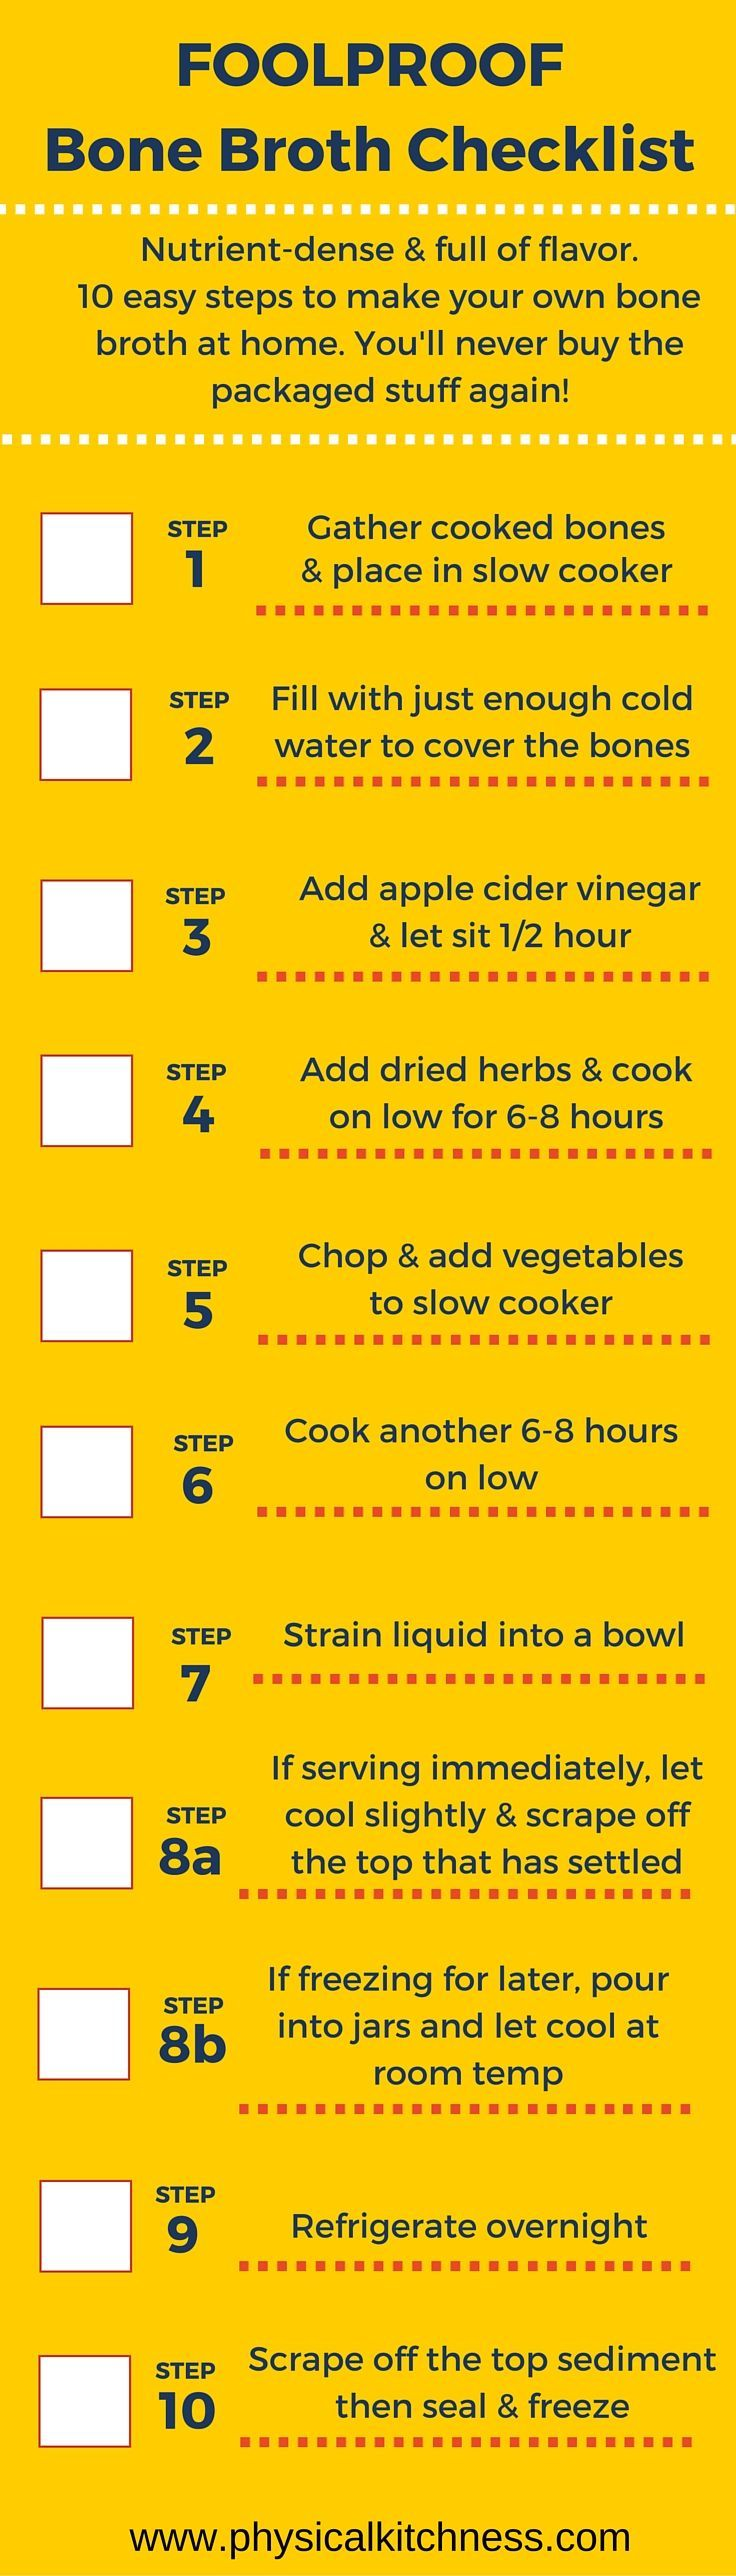 Foolproof, Failure-proof guide to make your own slow cooker bone broth at home. Delicious, easy, and packed full of nutrients